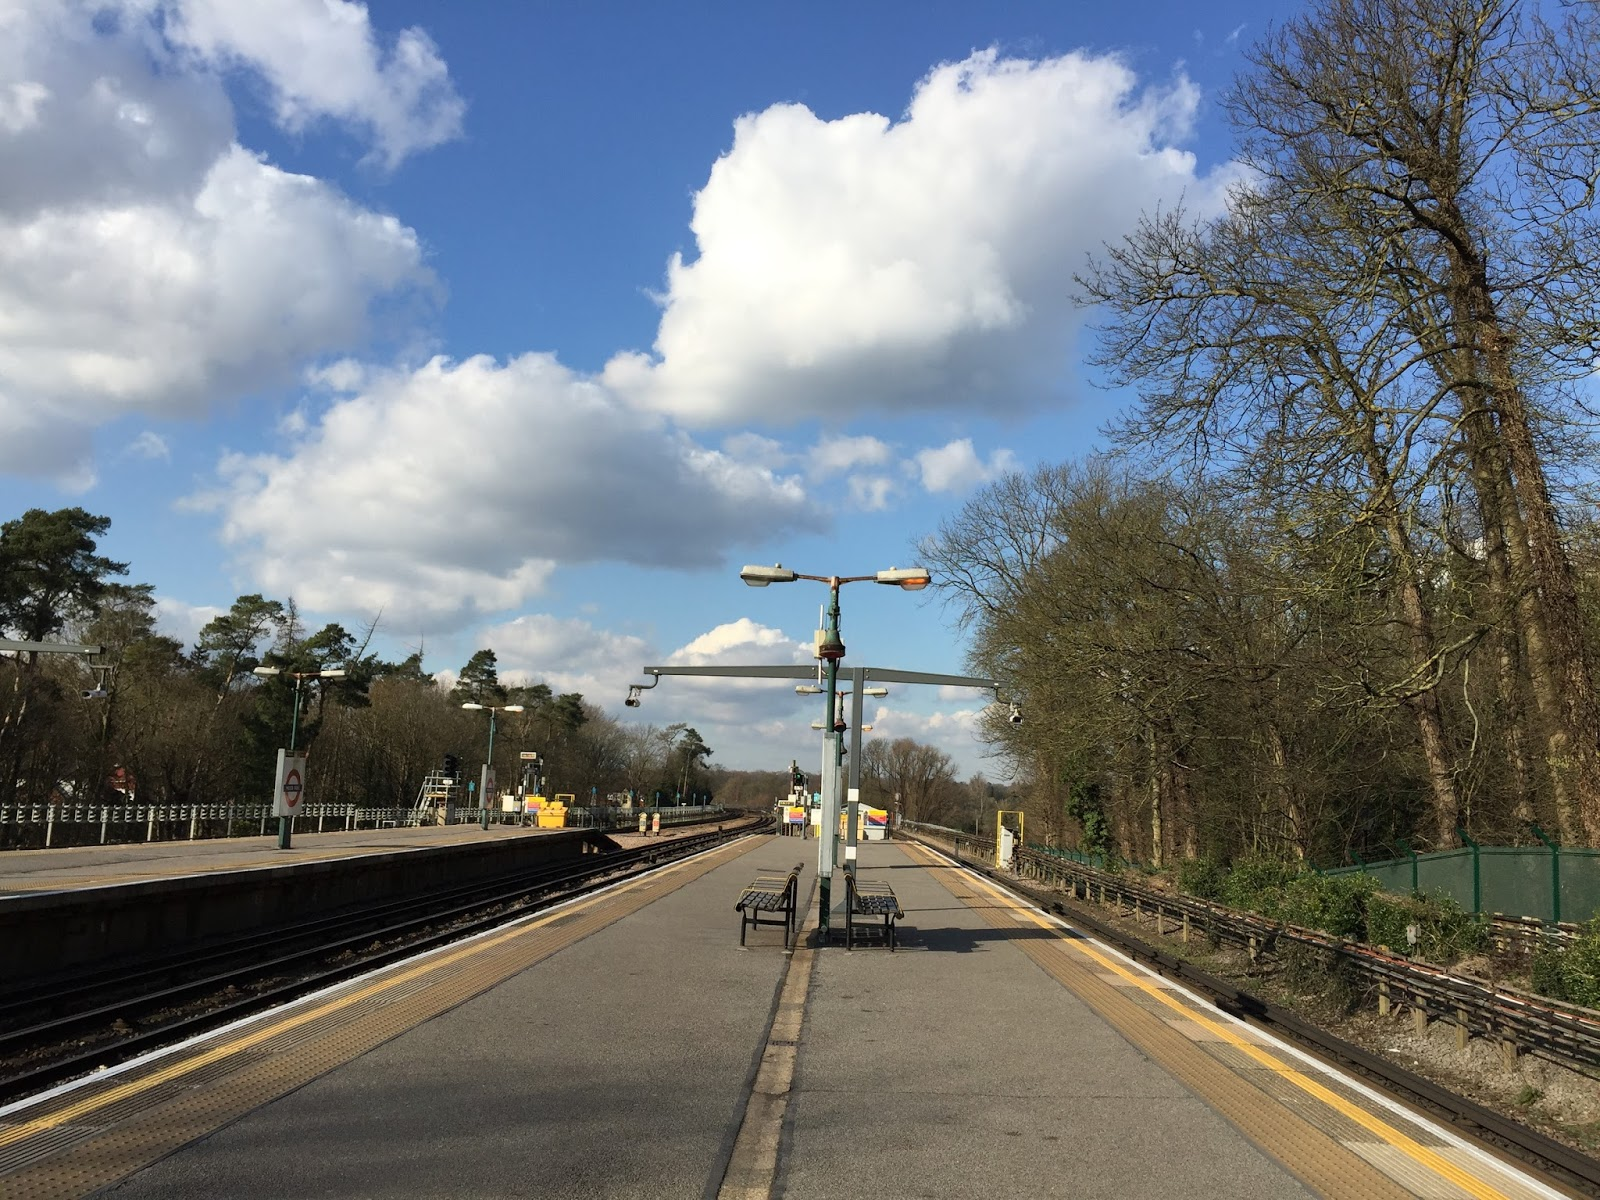 The view, looking northwards from Moor Park tube station